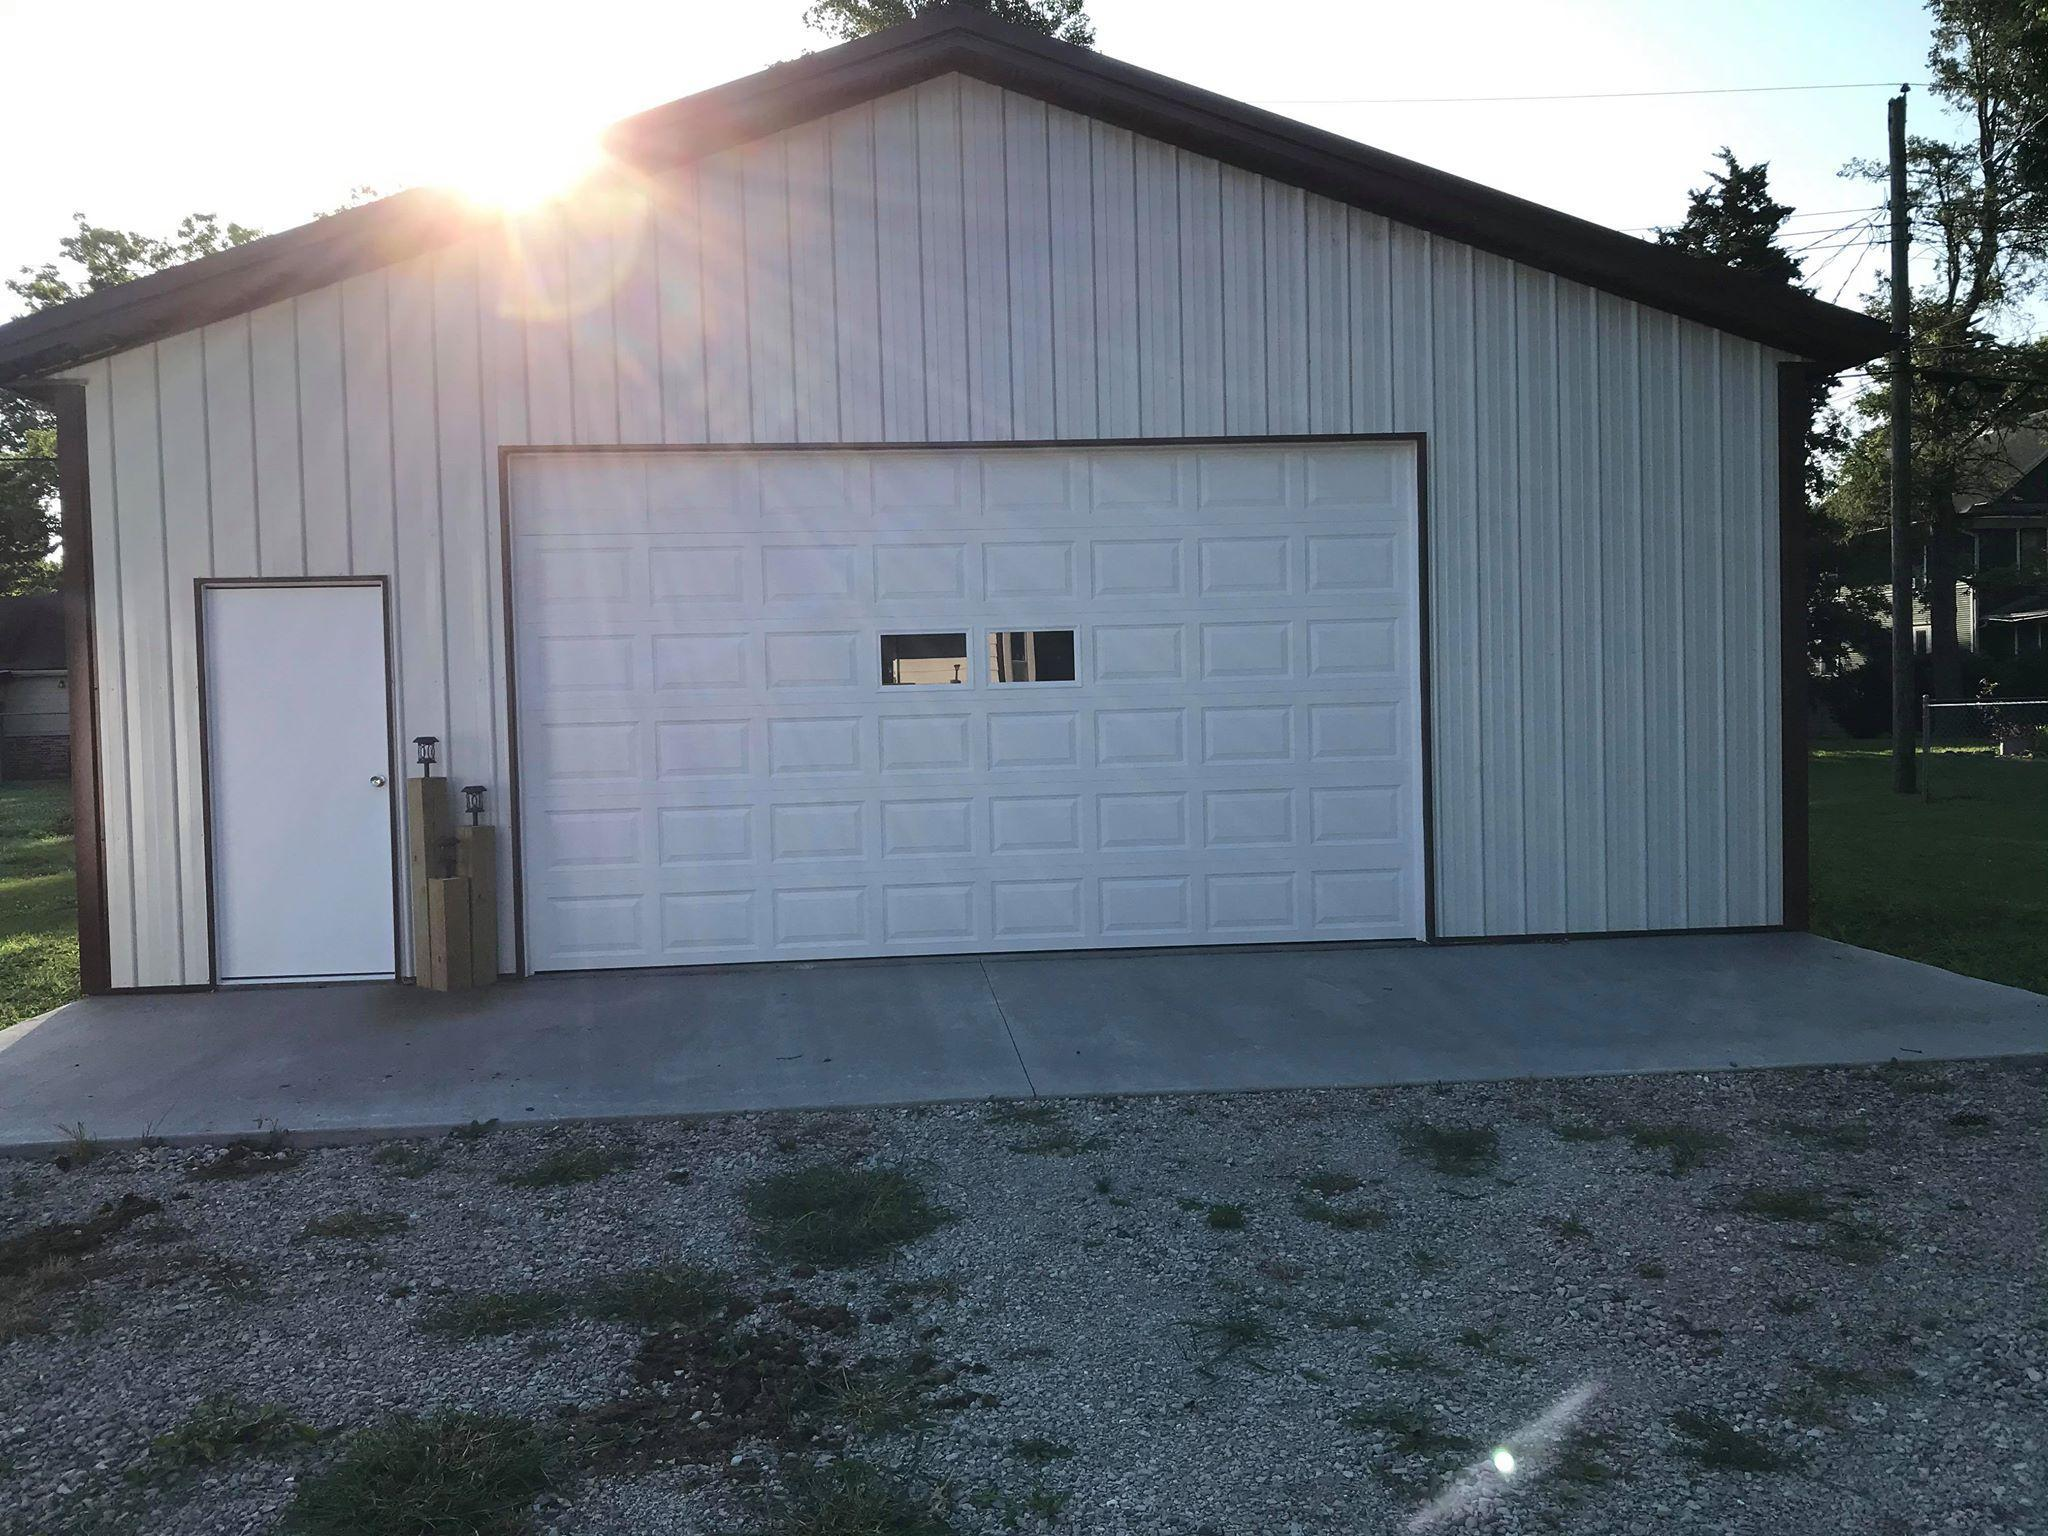 1322 Spring, Grinnell, Iowa 50112-1435, 2 Bedrooms Bedrooms, ,1 BathroomBathrooms,Single Family,For Sale,Spring,5627022